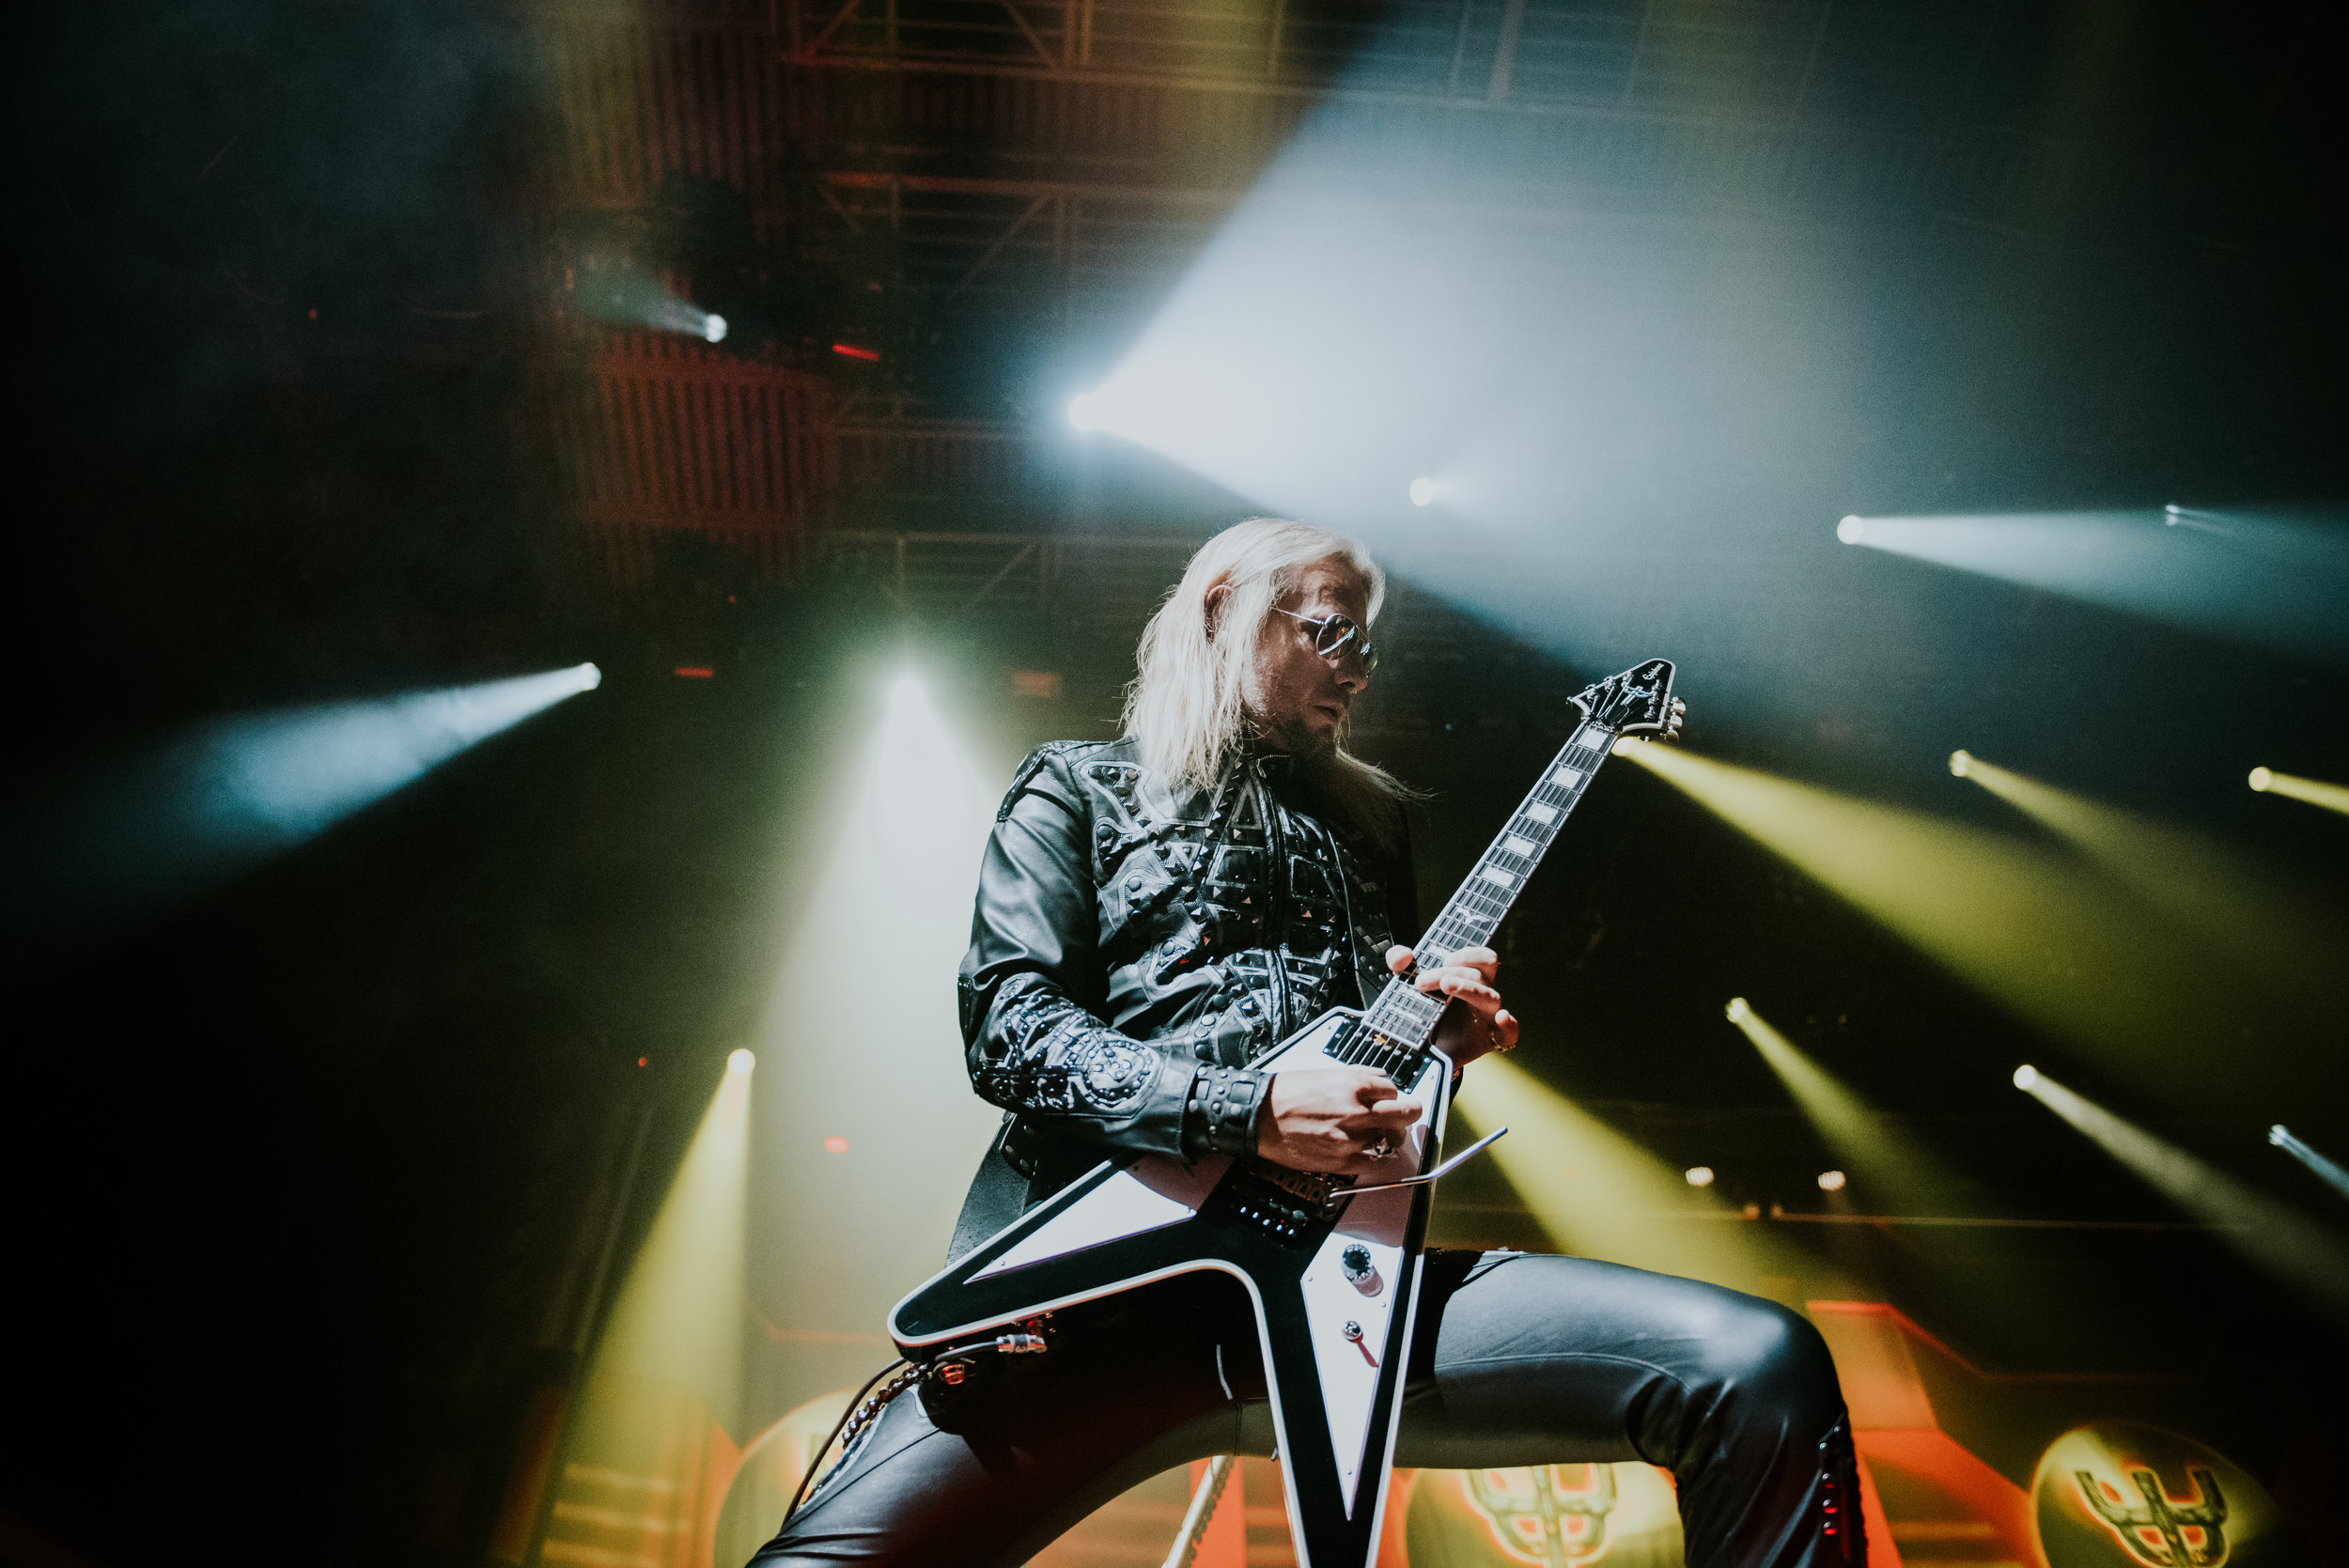 Judas Priest - Print-19.jpg